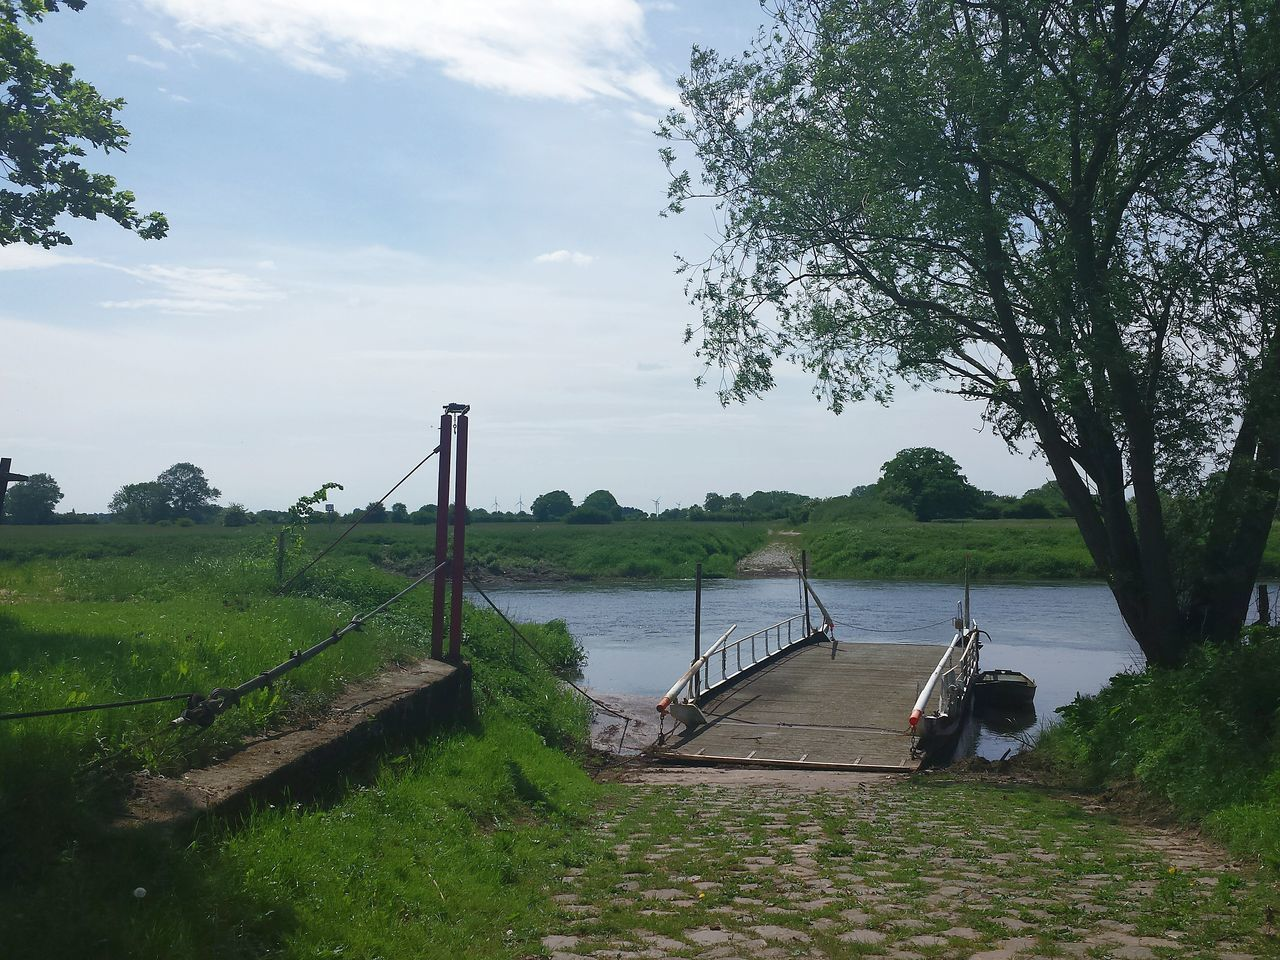 Old Ferry Alte Fähranlage űber die Aller River View Riverside River Landscape Landscape_photography Riverside View Green Nature Landscapes Ladyphotographerofthemonth The Essence Of Summer Ancient Ferry Crossing Station Trees And Bushes Trees And Water Branches And Leaves